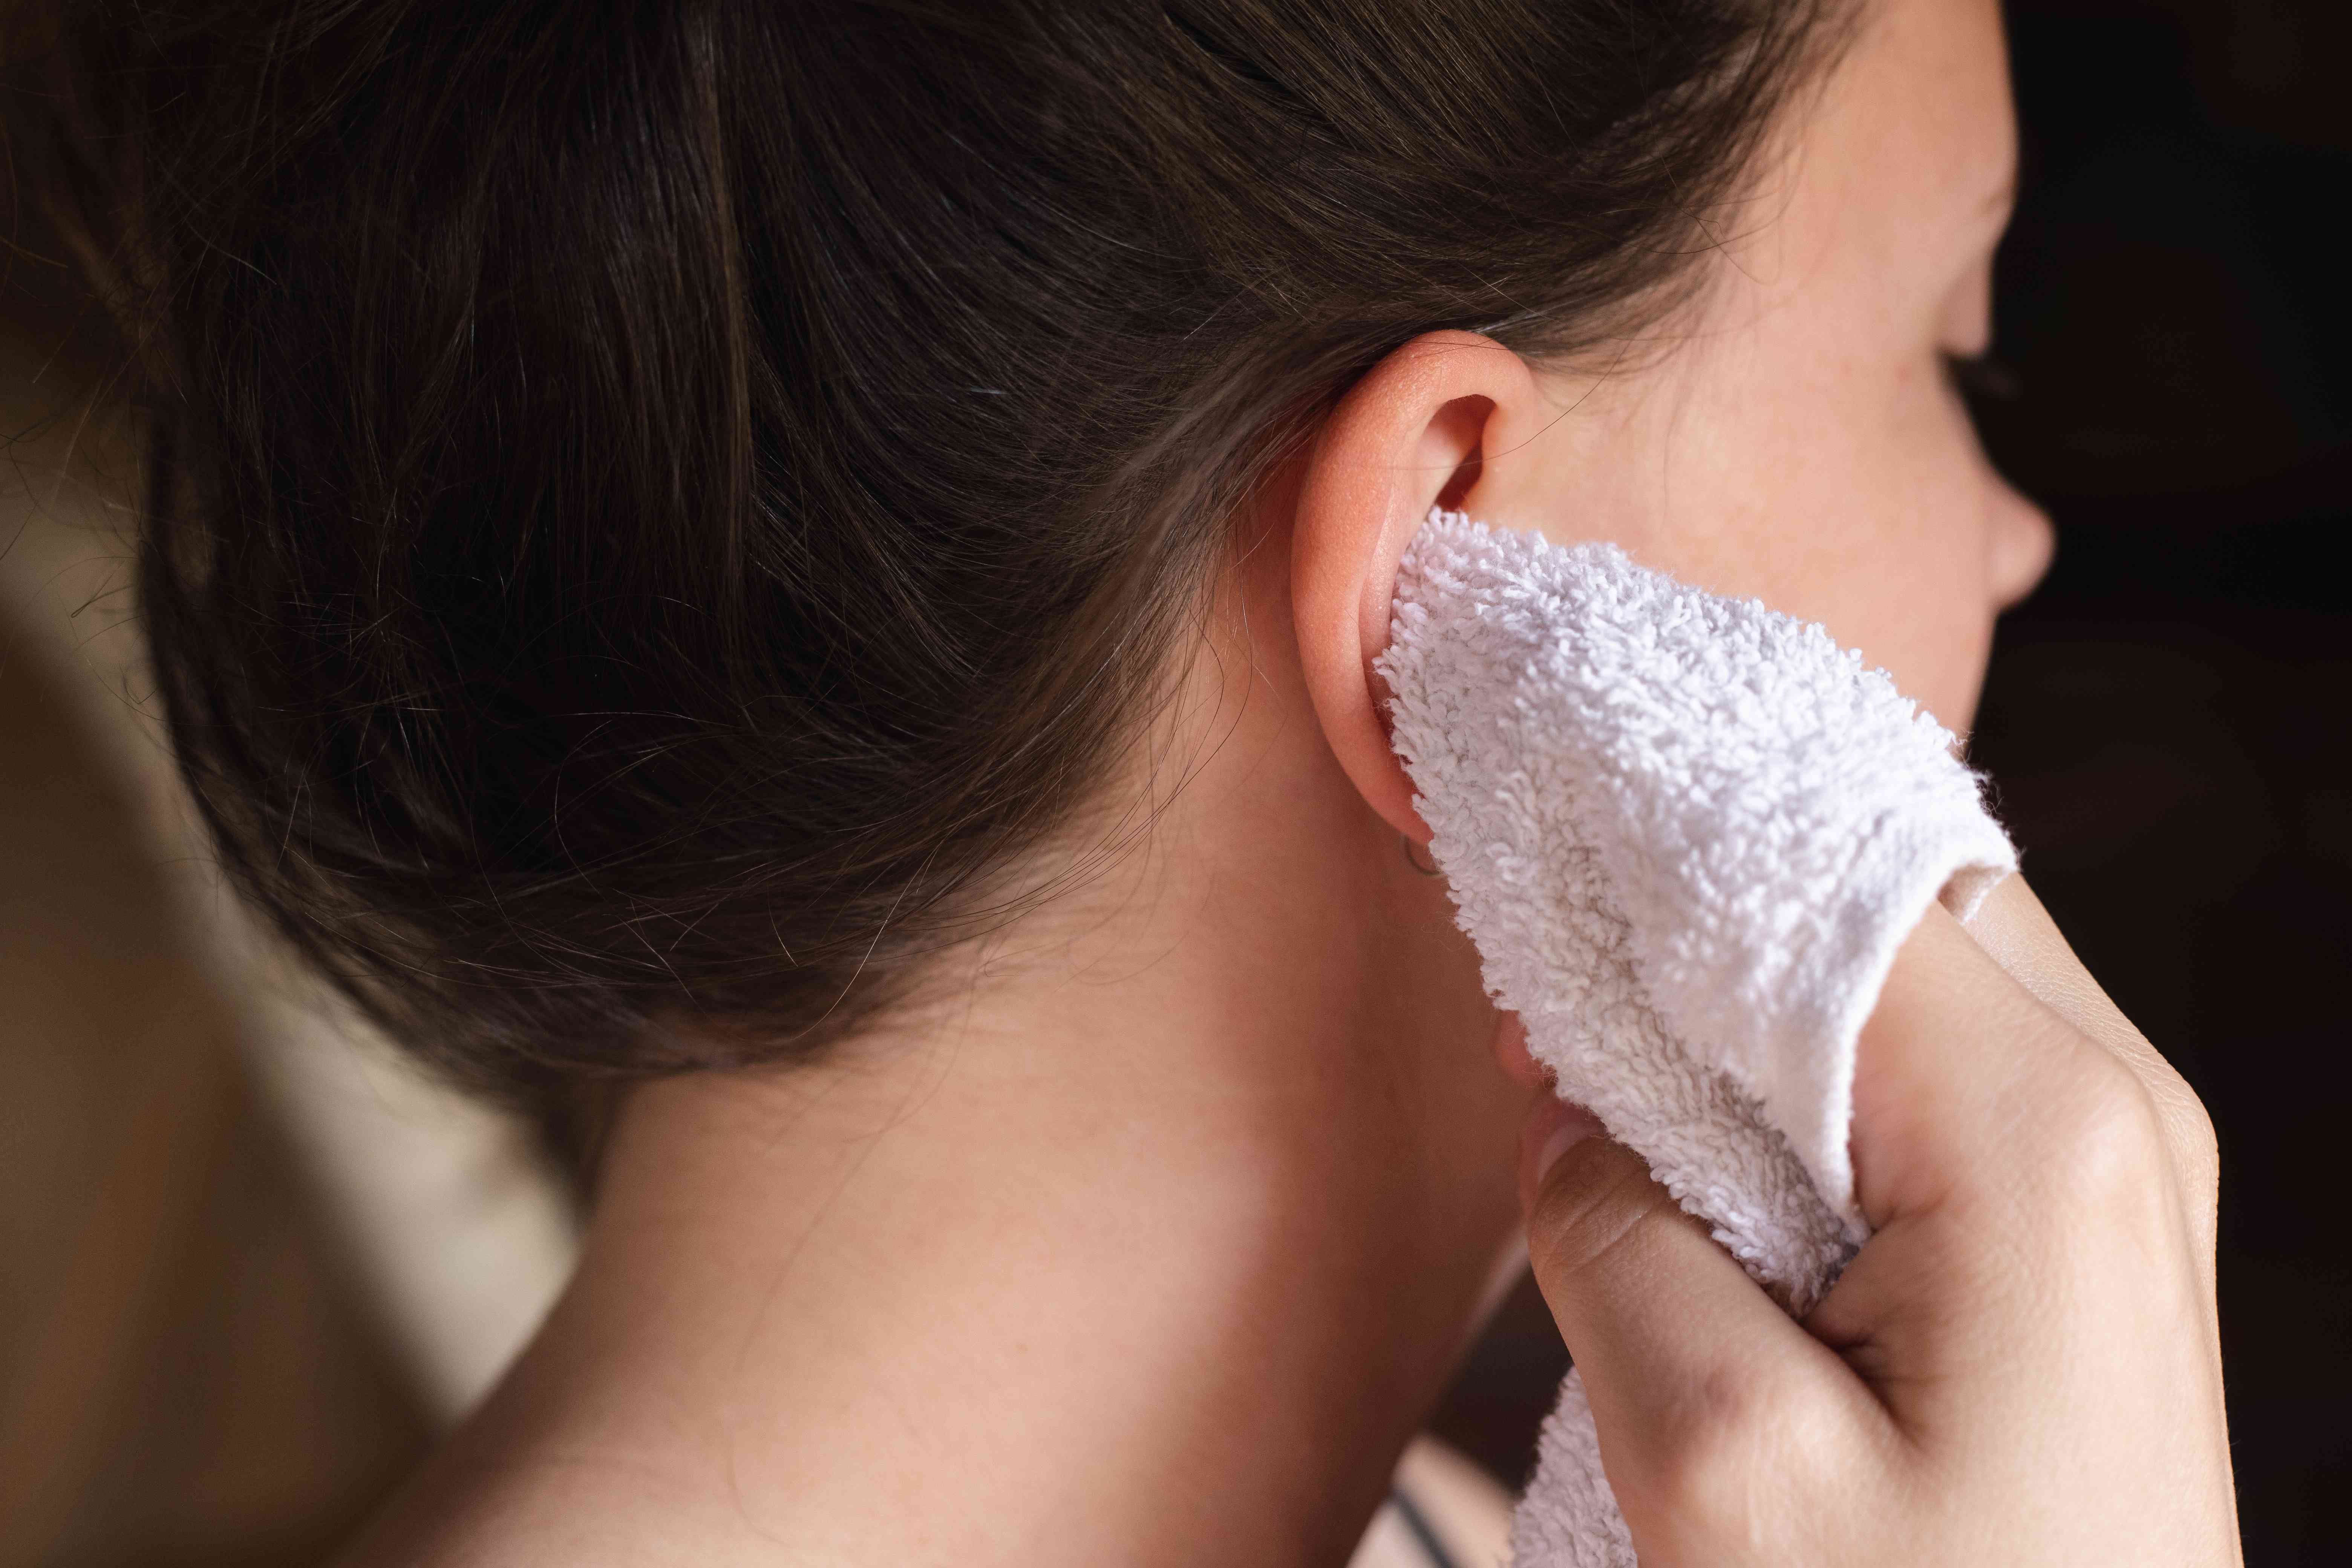 woman uses white washcloth wrapped around finger to gently dry ears